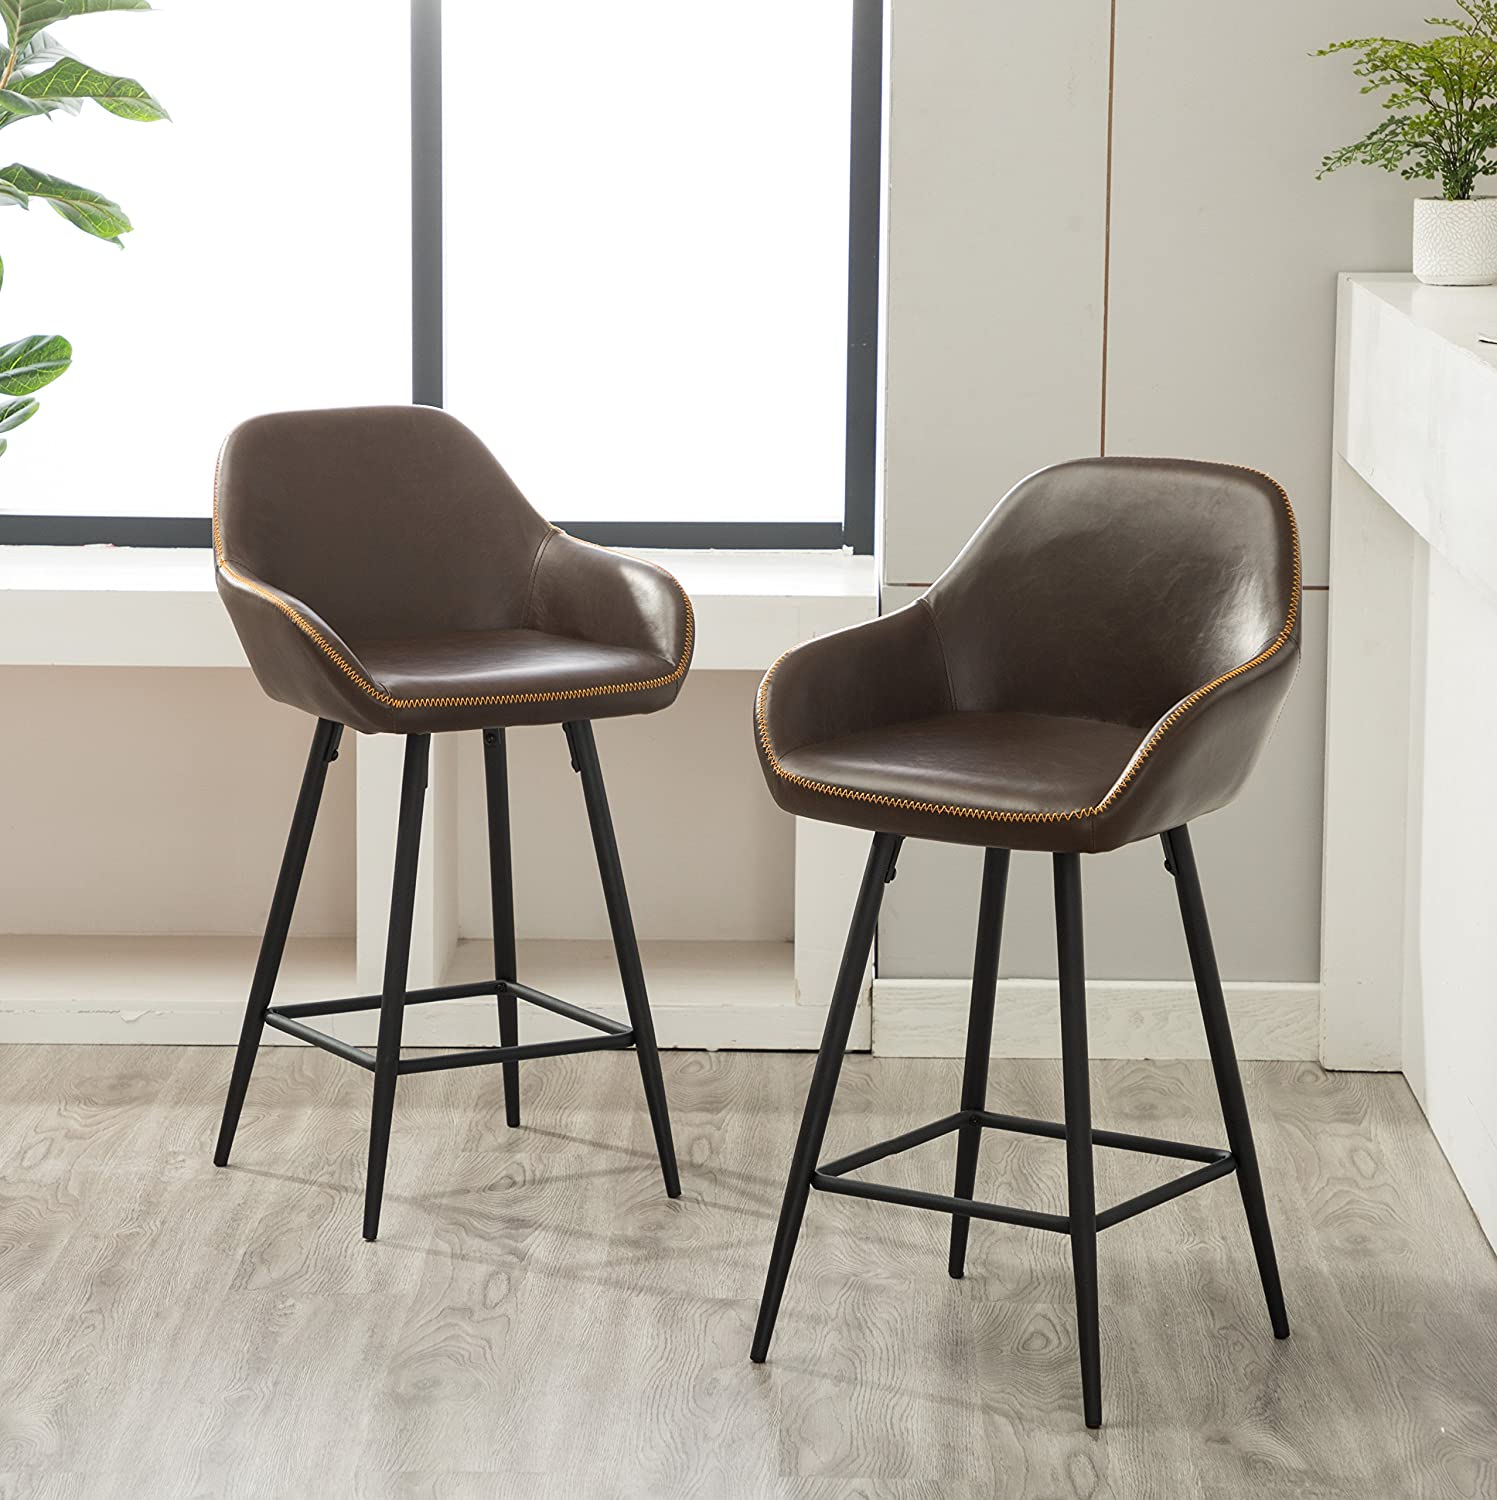 Roundhill Furniture PC281GY Horgen Contemporary Faux Leather Counter Height Dining Chairs, Gray, Set of 2 RH